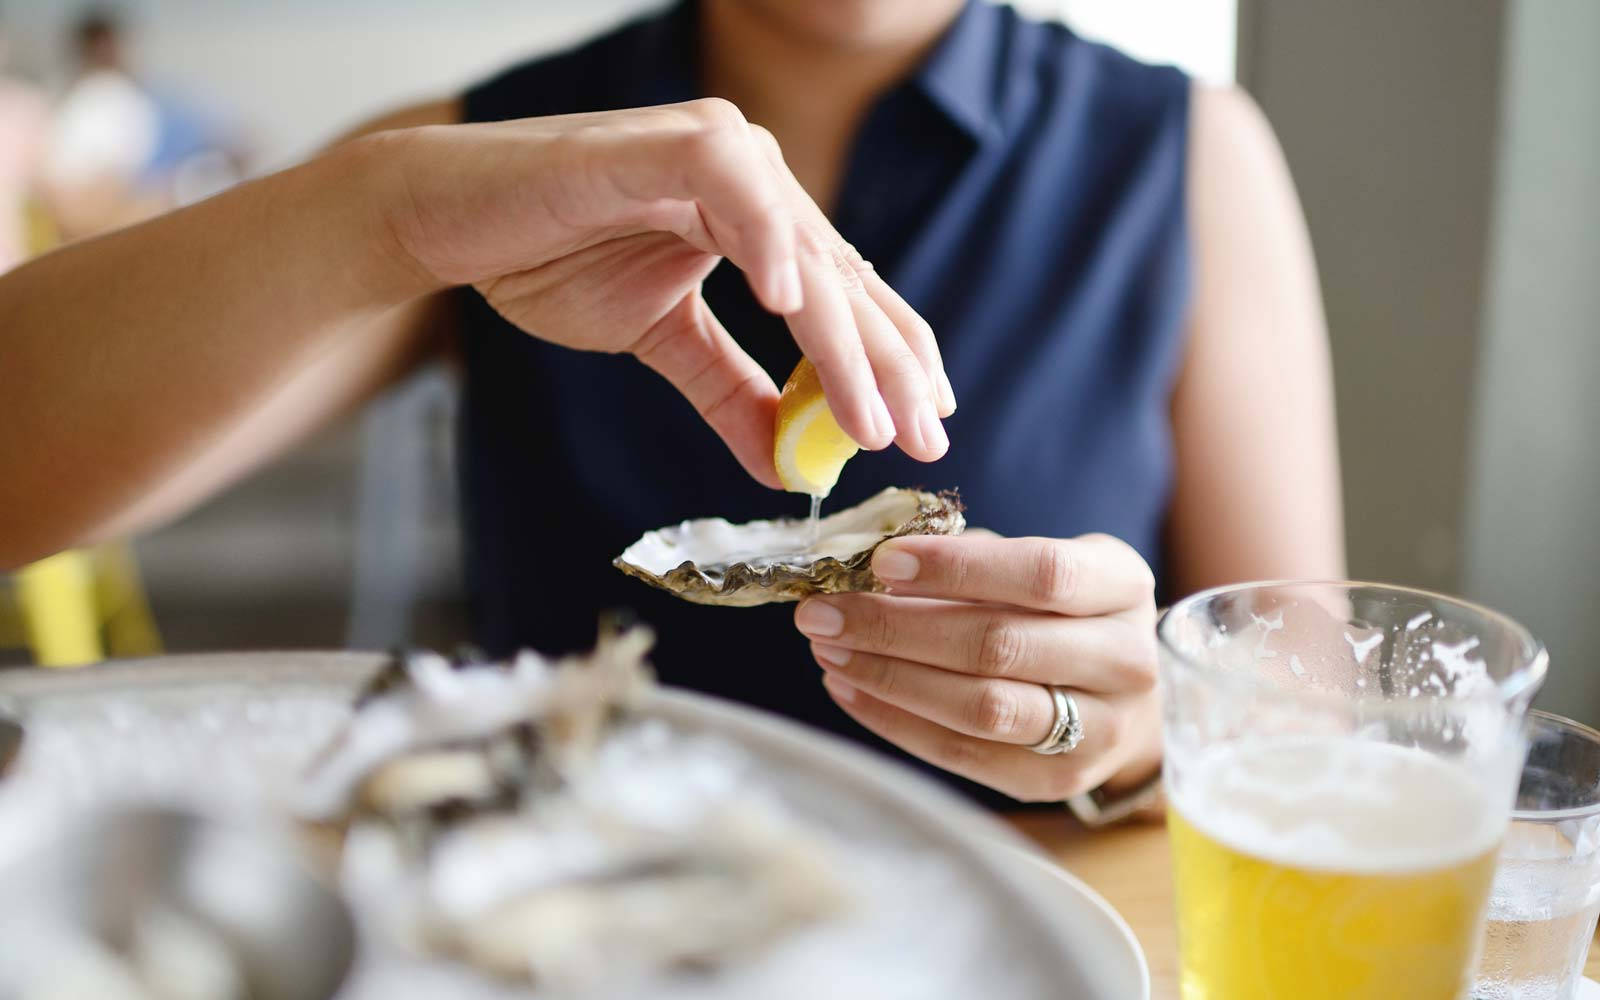 Woman squeezing lemon onto a raw oyster